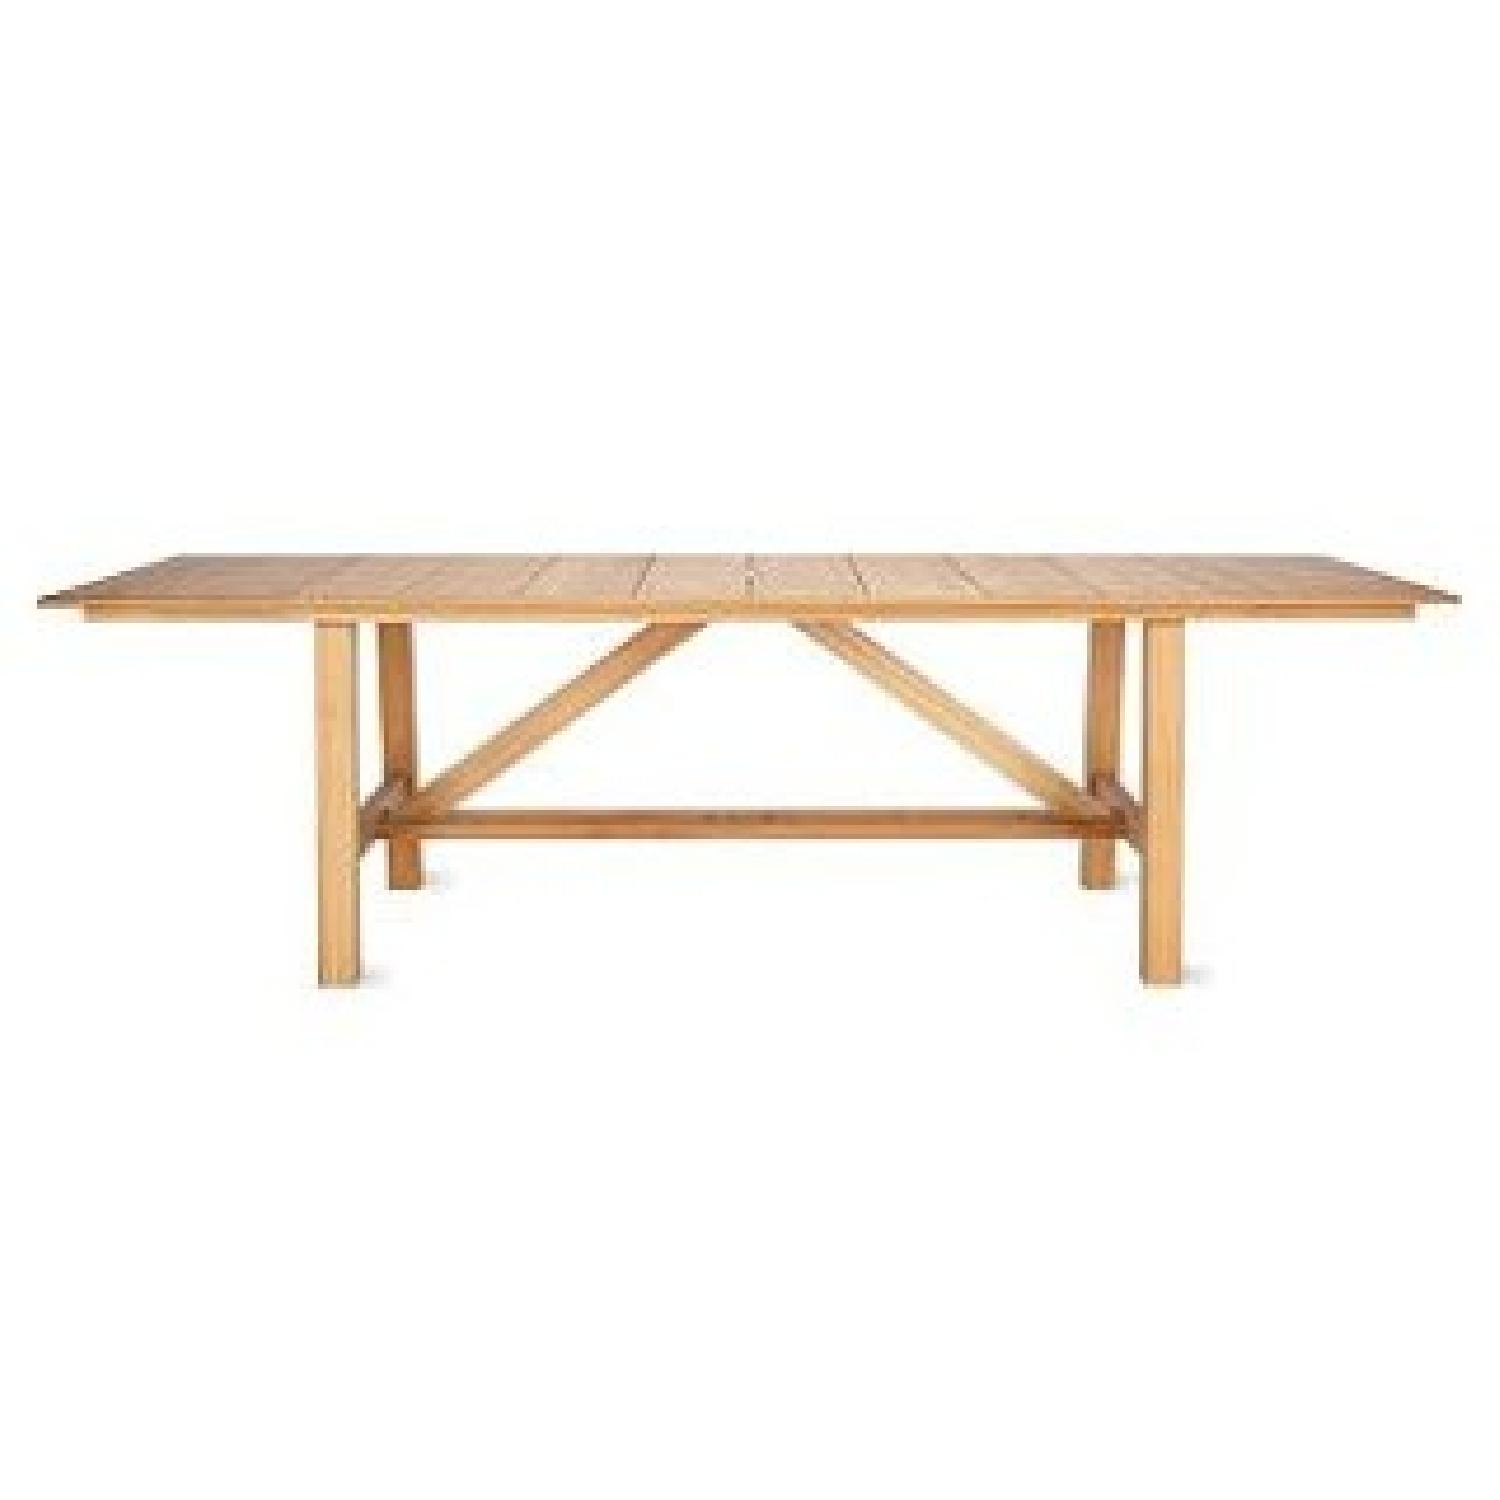 Design Within Reach Alden Collection Teak Outdoor Dining Table - image-0